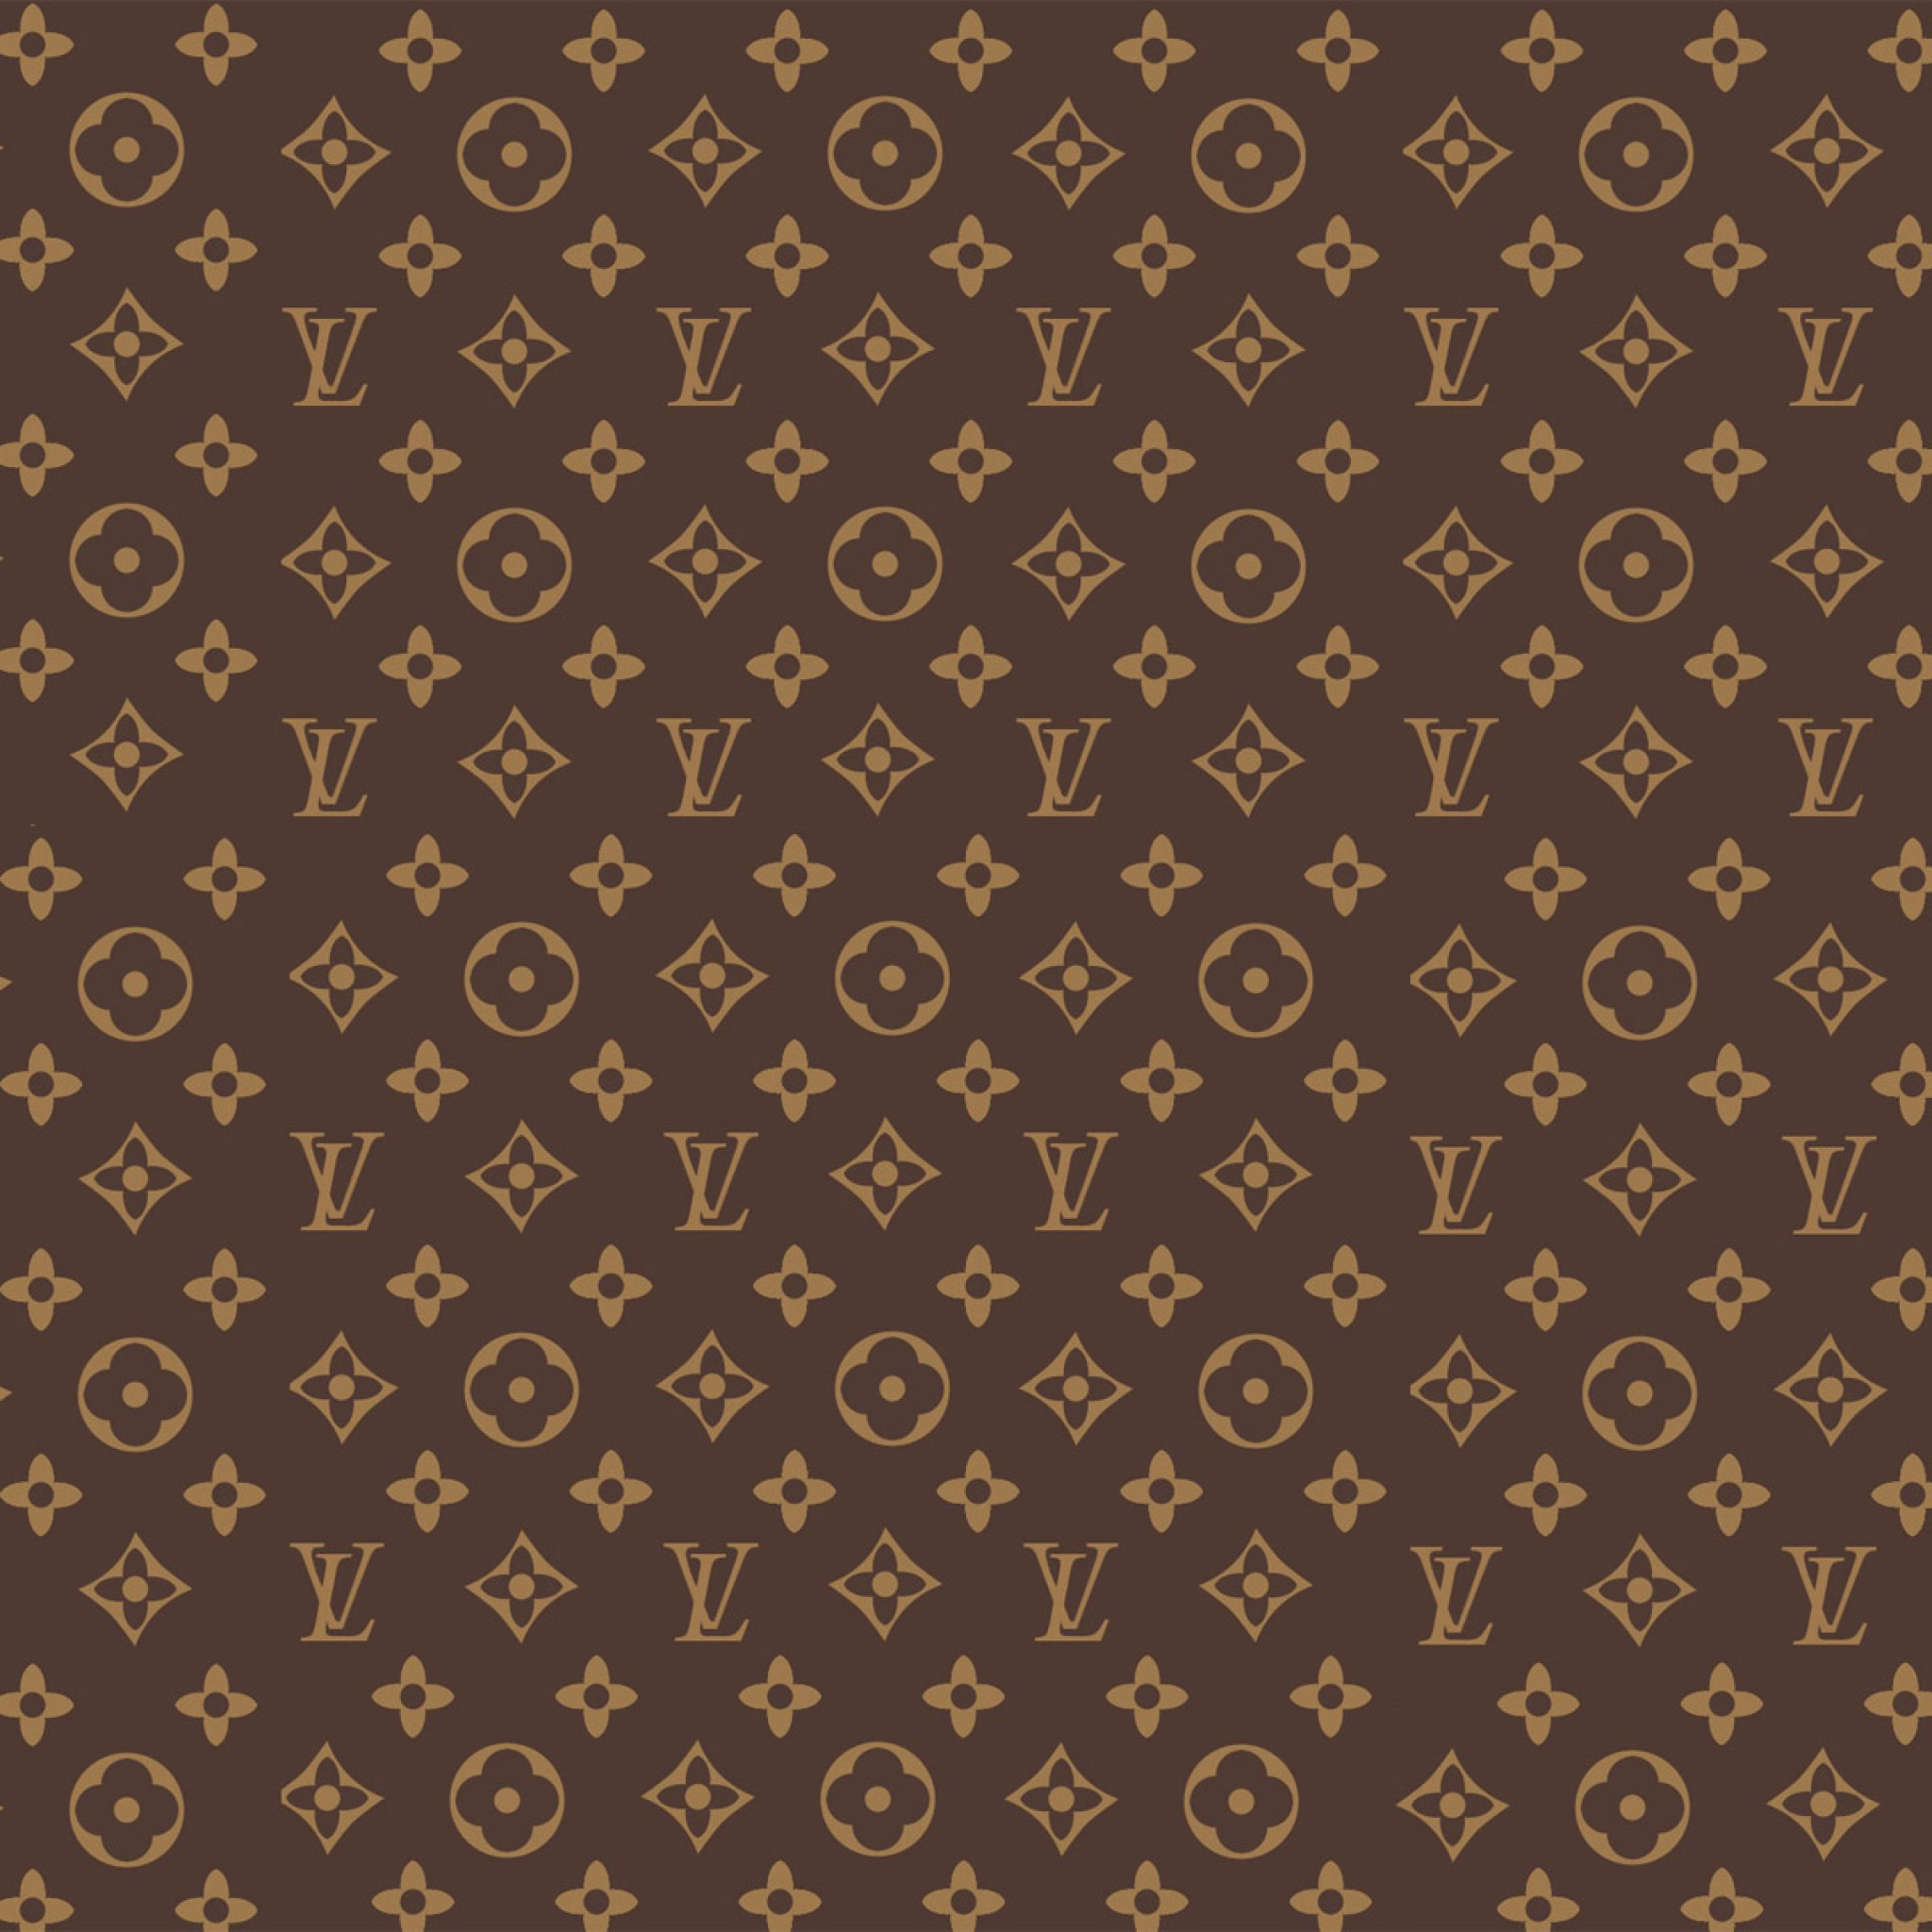 Res: 2048x2048, Bape Wallpaper Best Of Louis Vuitton Print Ipad Air Wallpaper Download  iPhone